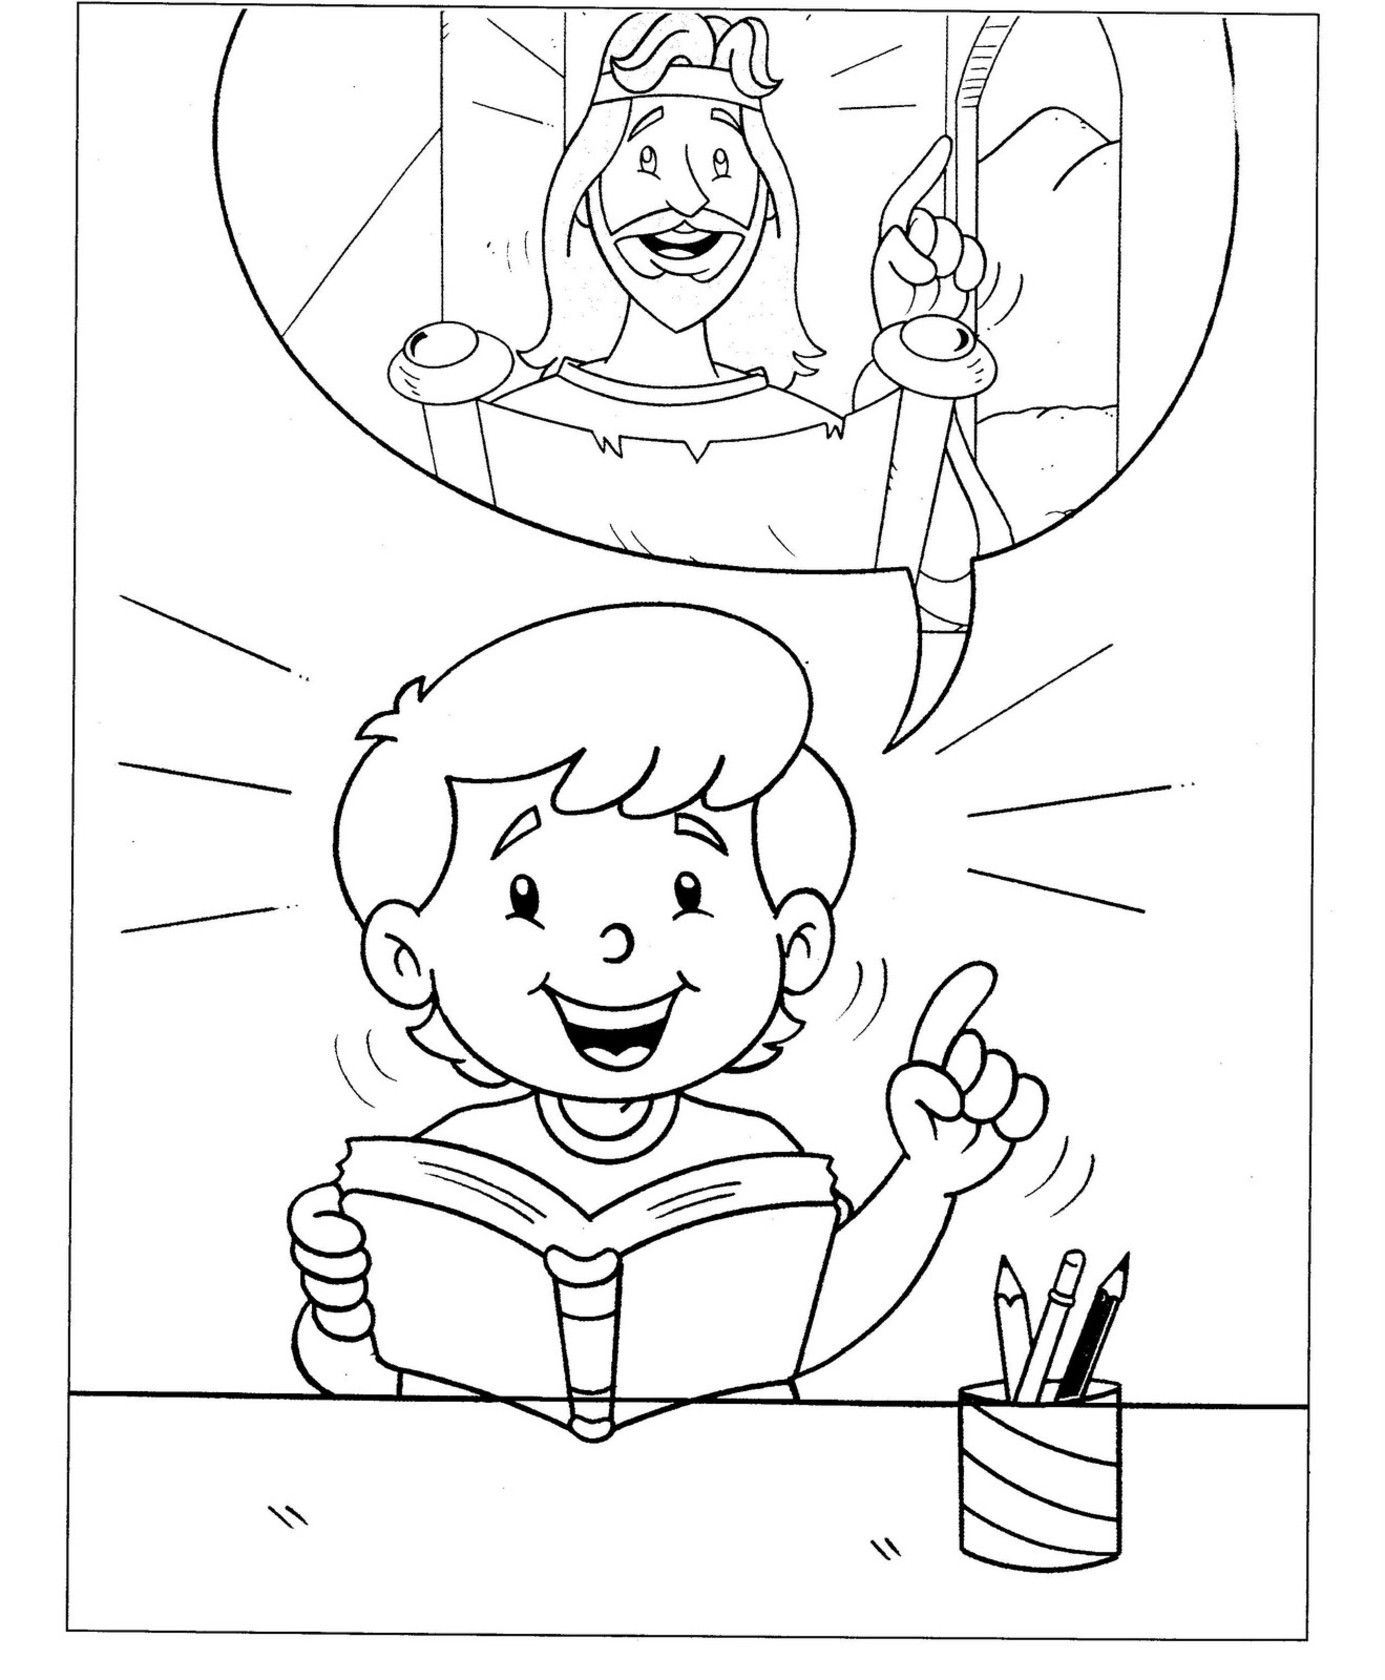 religious coloring pages - Bing Images | Toddler Sunday School ...